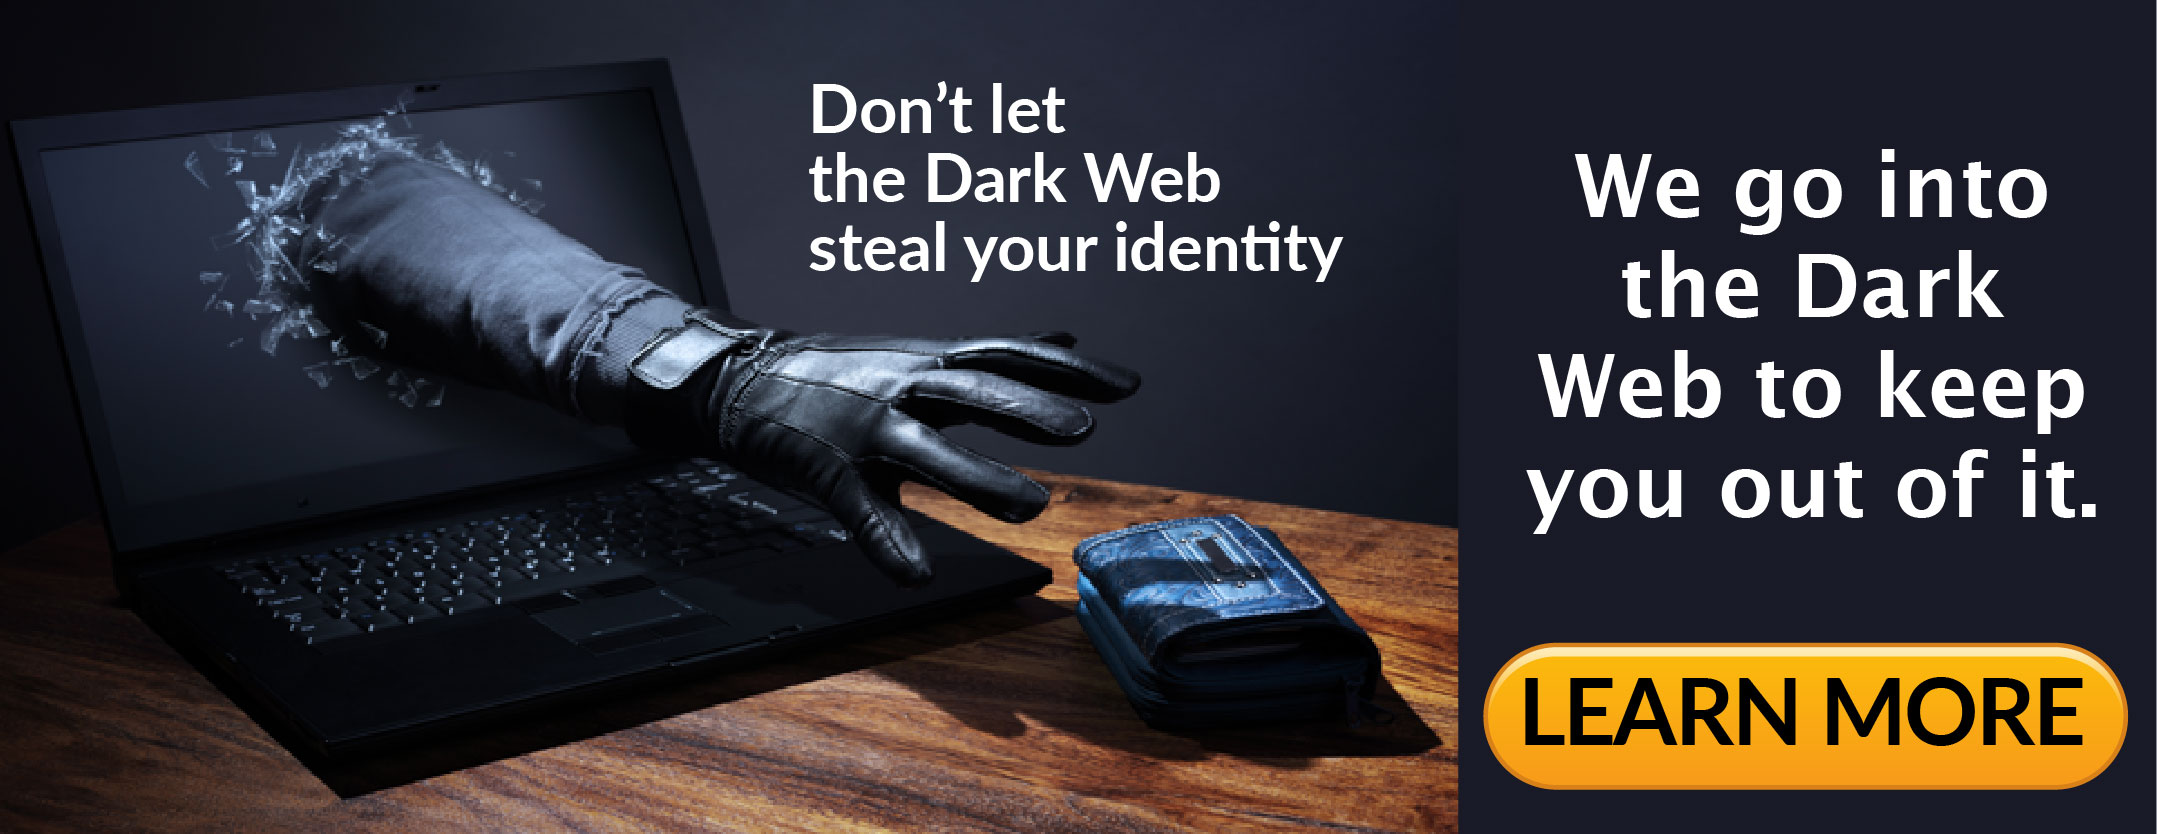 prevent hacking georgetown tx